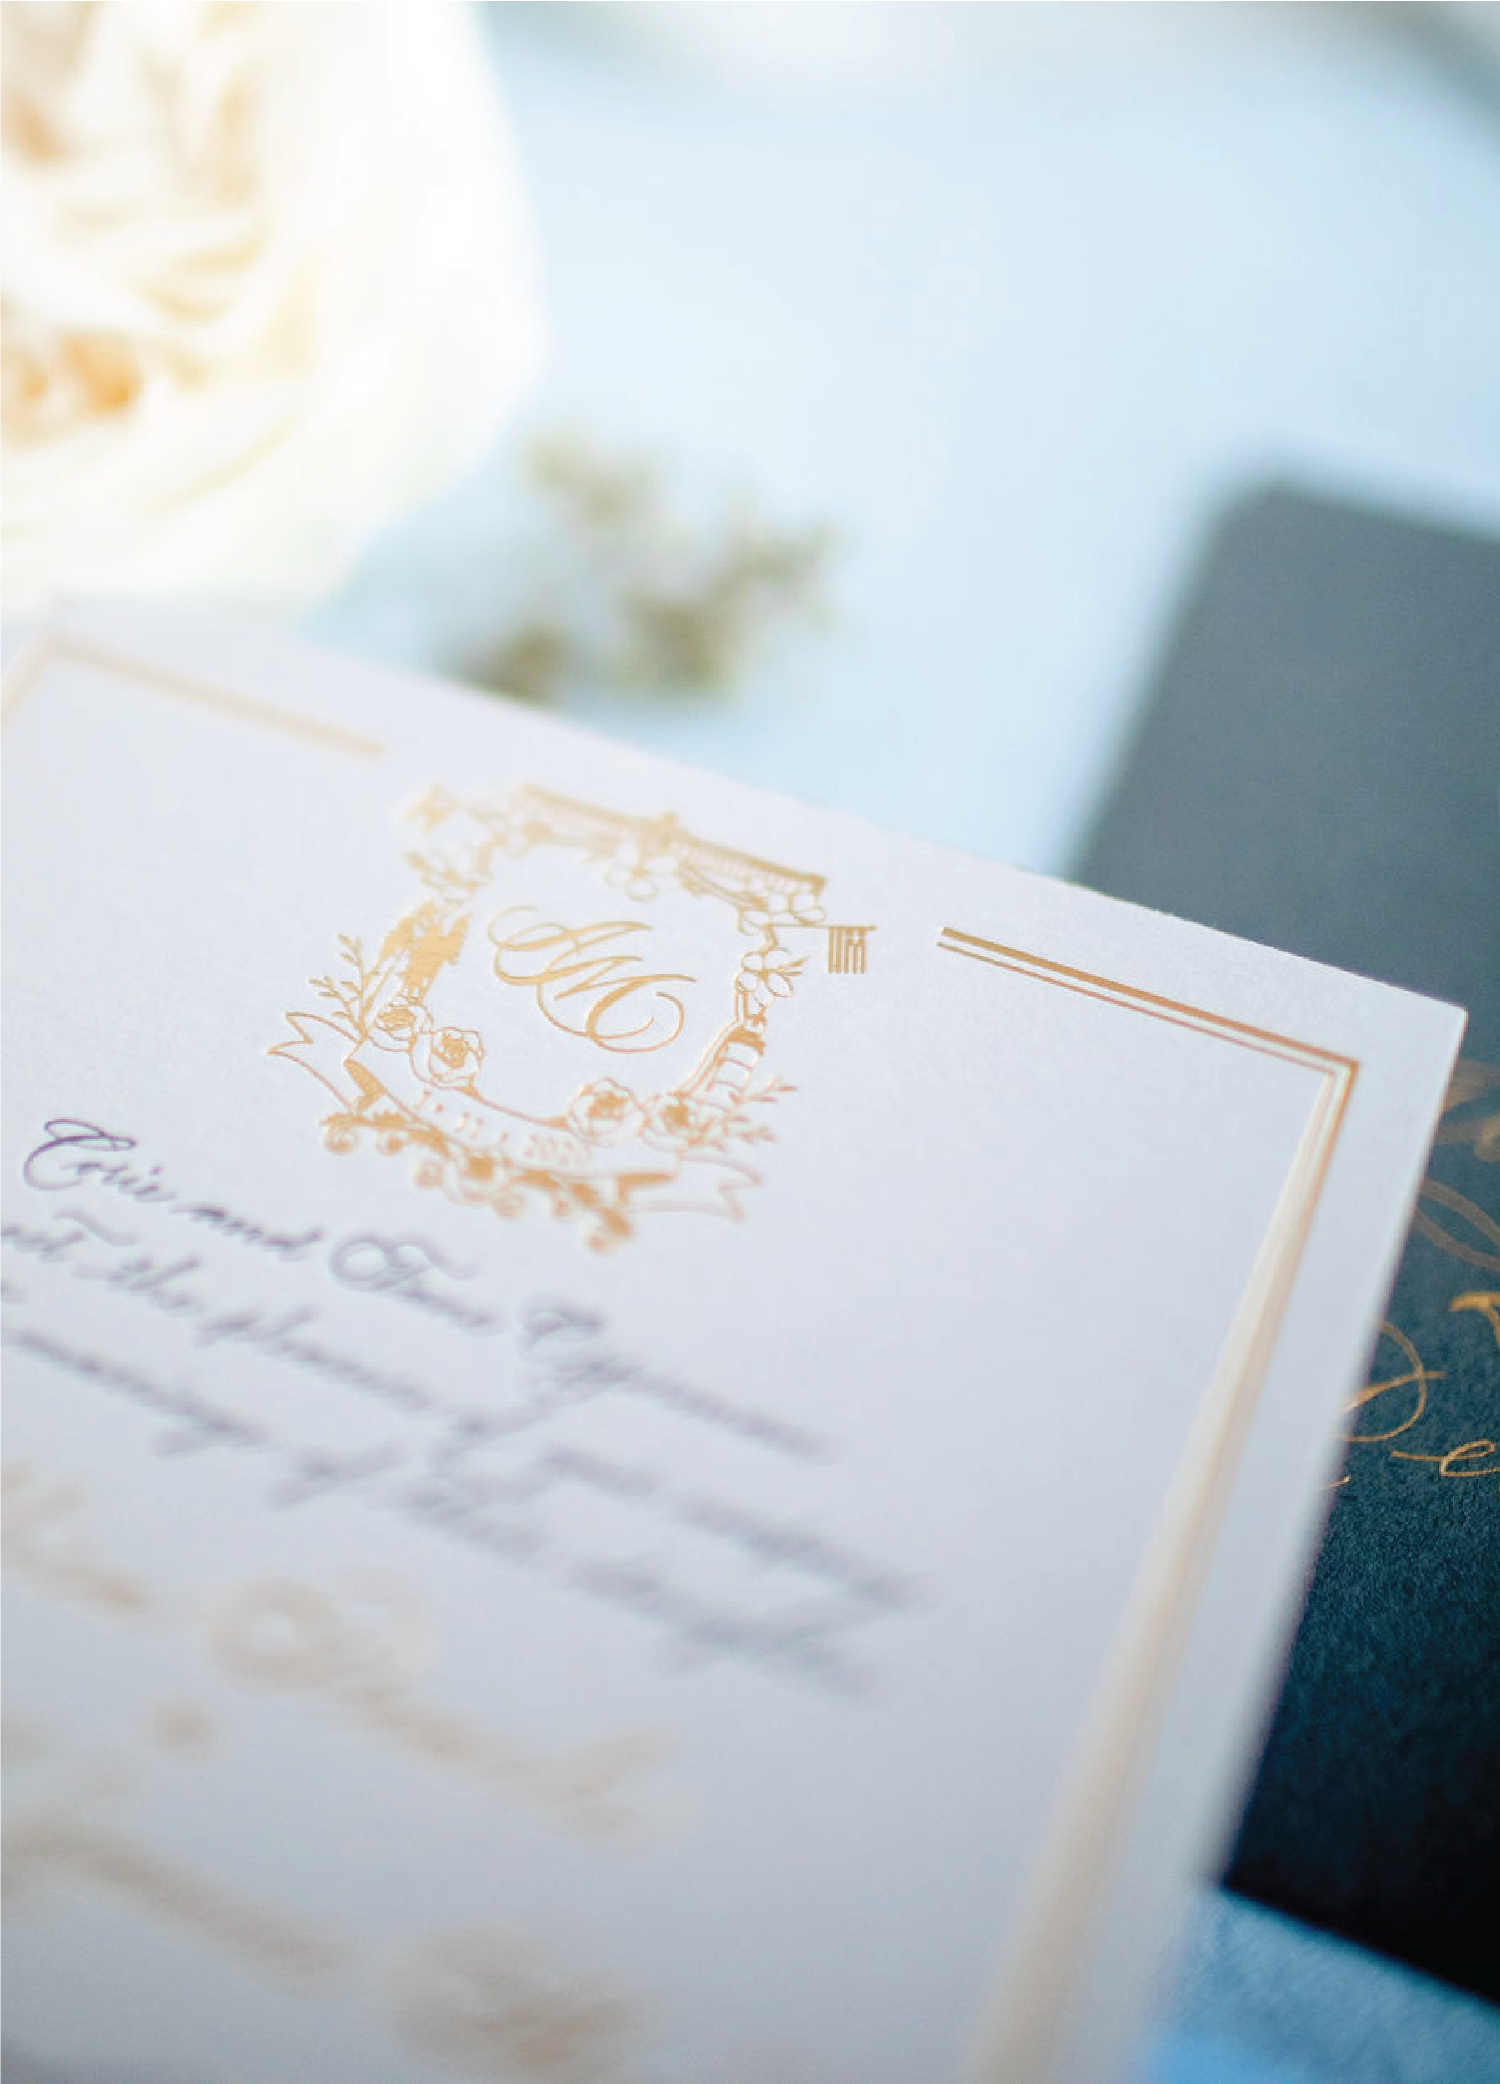 Custom crest in gold foil with all script wedding invitations with calligraphy by Leah E. Moss Designs